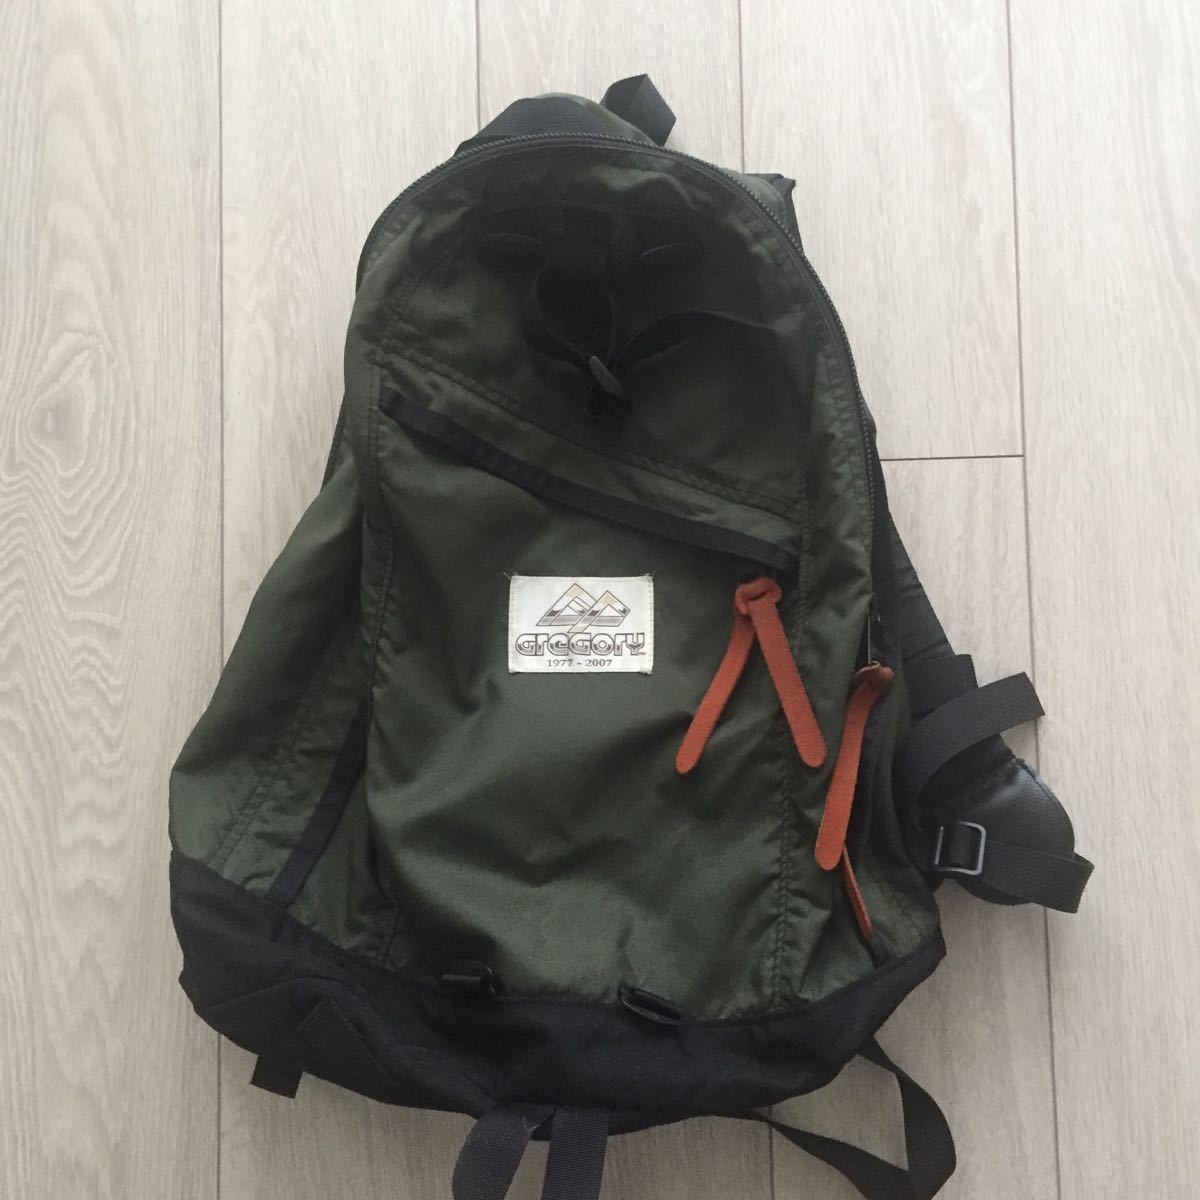 70738b5c467e 中古 グレゴリー デイパック リュックサック30周年 記念モデル 旧ロゴ Gregory day pack backpack